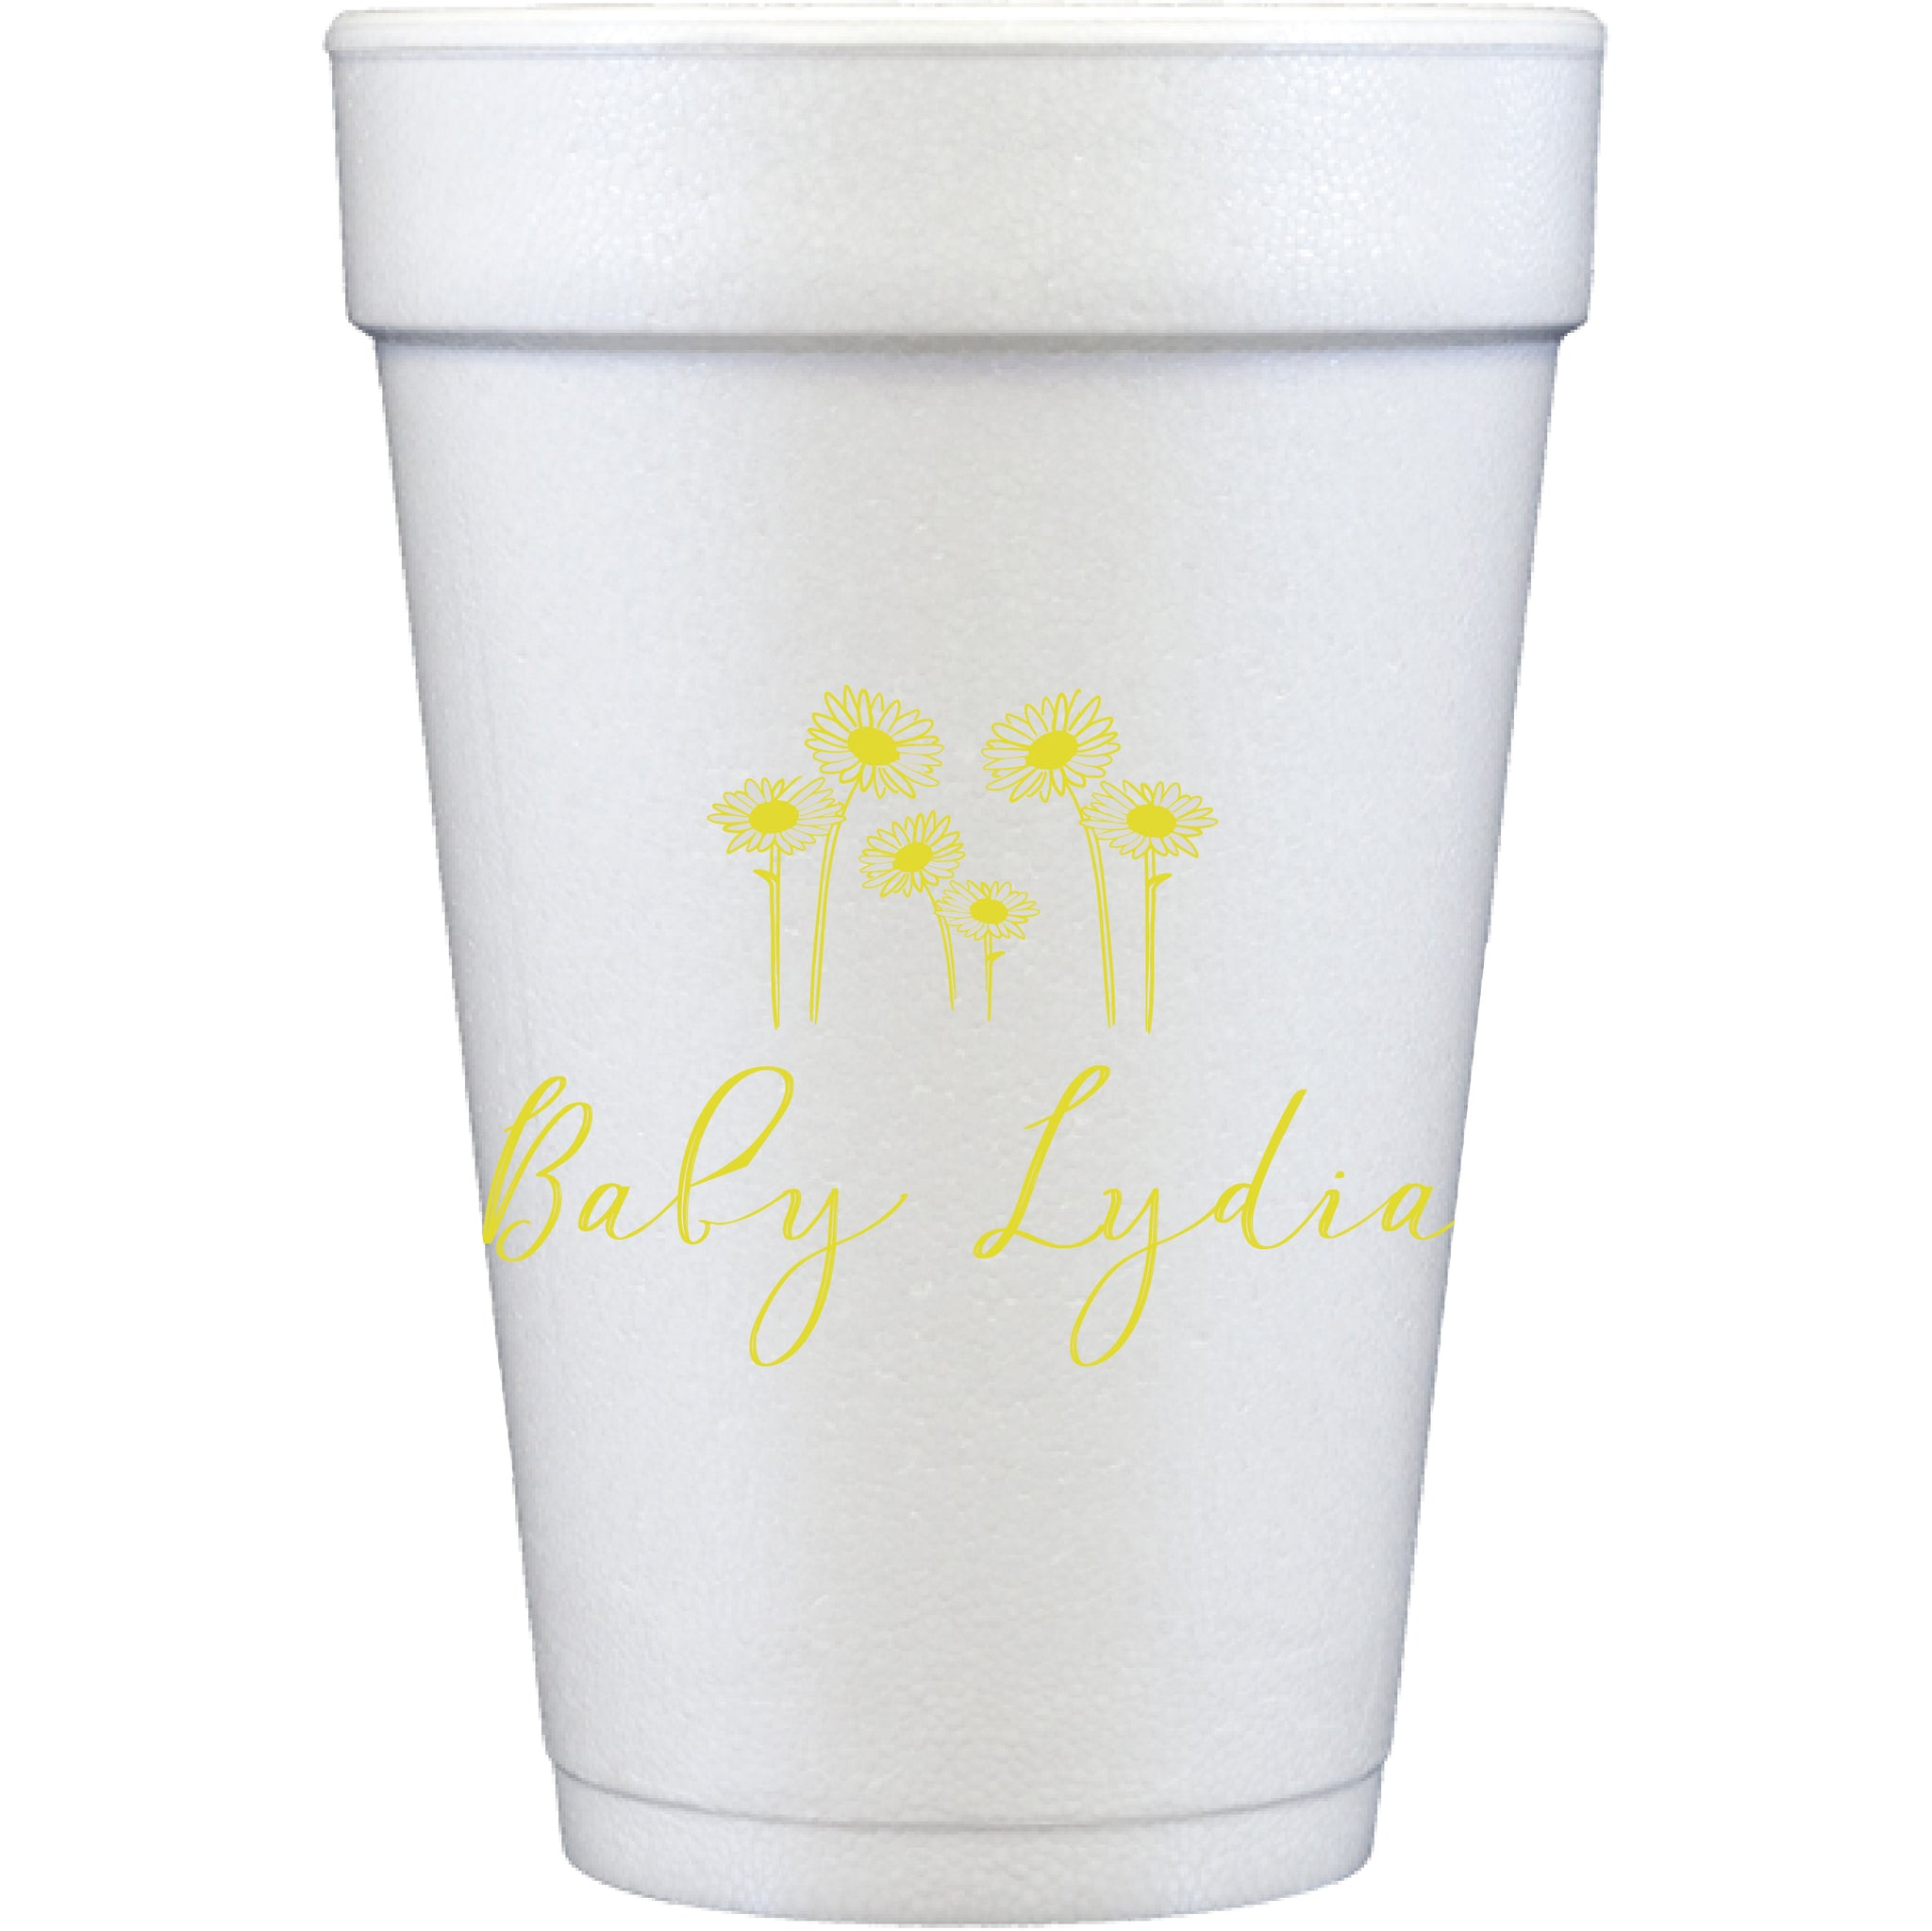 styrofoam cups | sunflowers